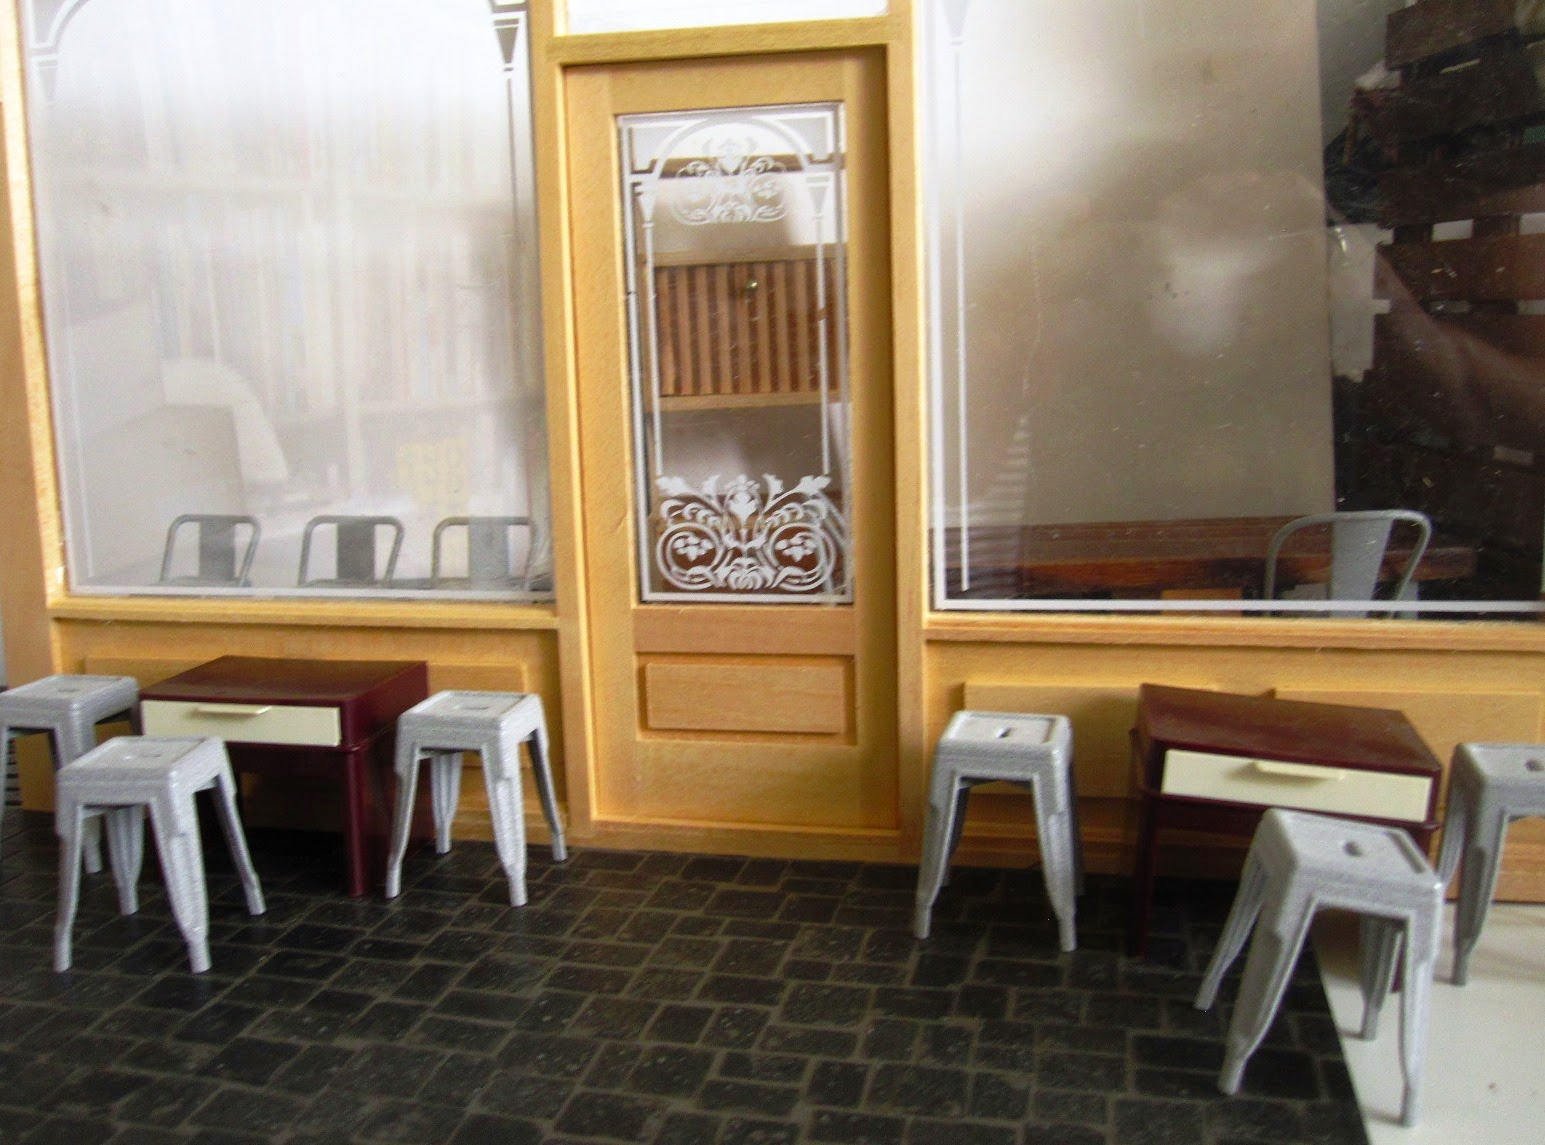 Mock up of the front of a modern dolls' house miniature cafe, showing the shop front and several tables and unpainted cafe chairs.